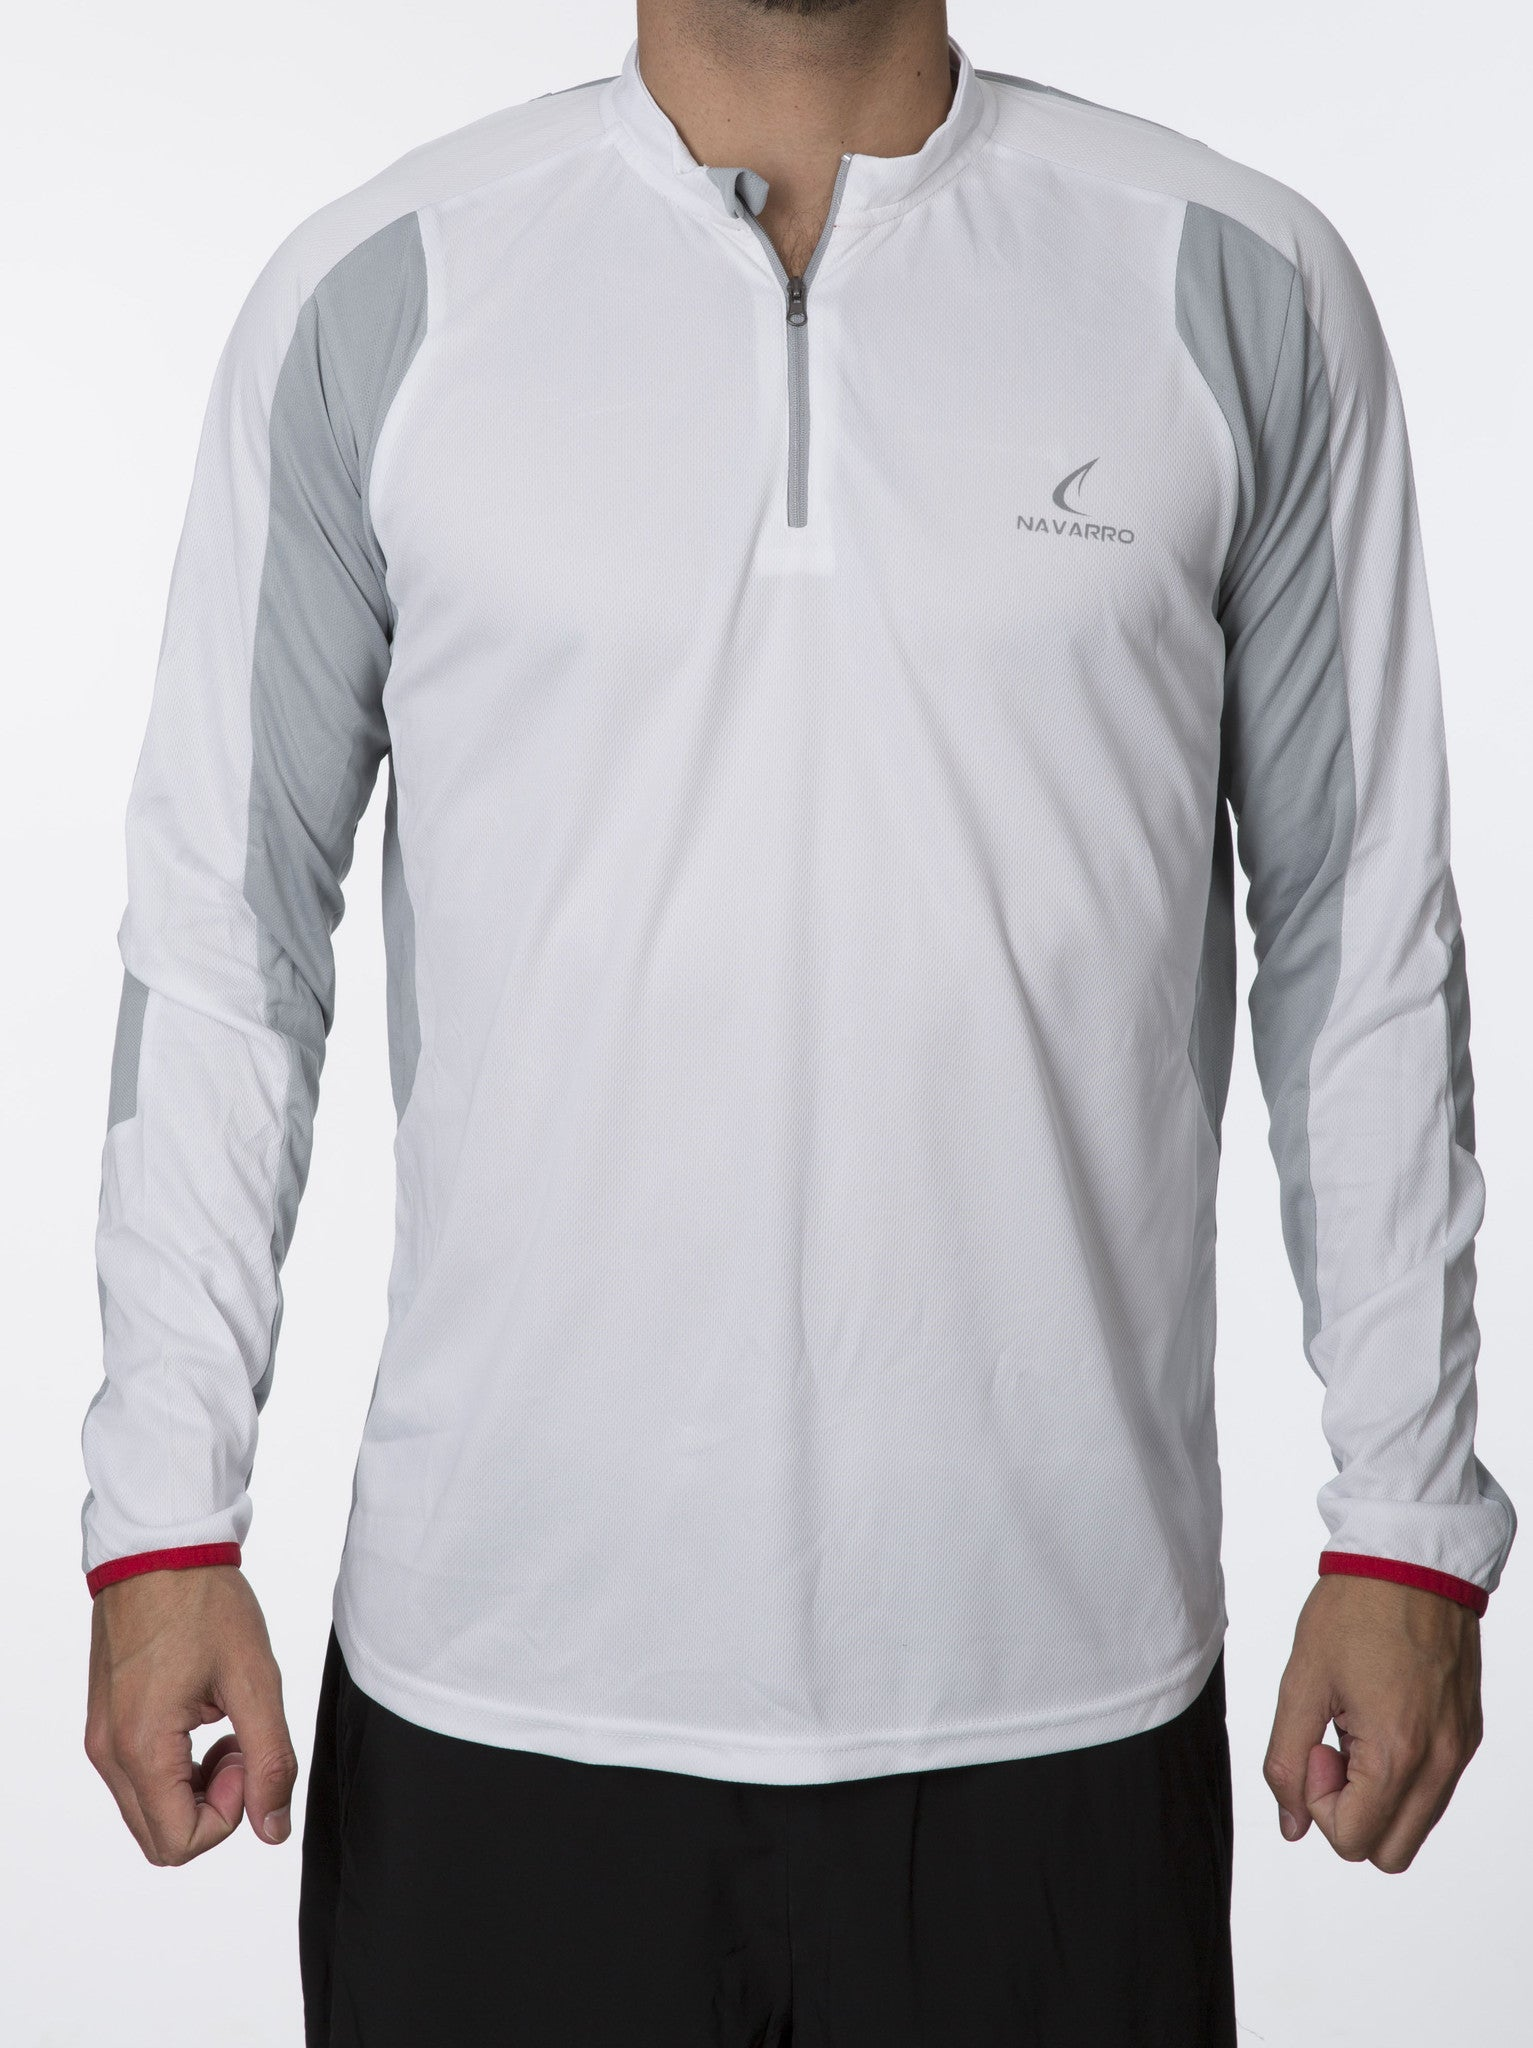 Men's Cycling Zipper Long-Sleeve Shirt